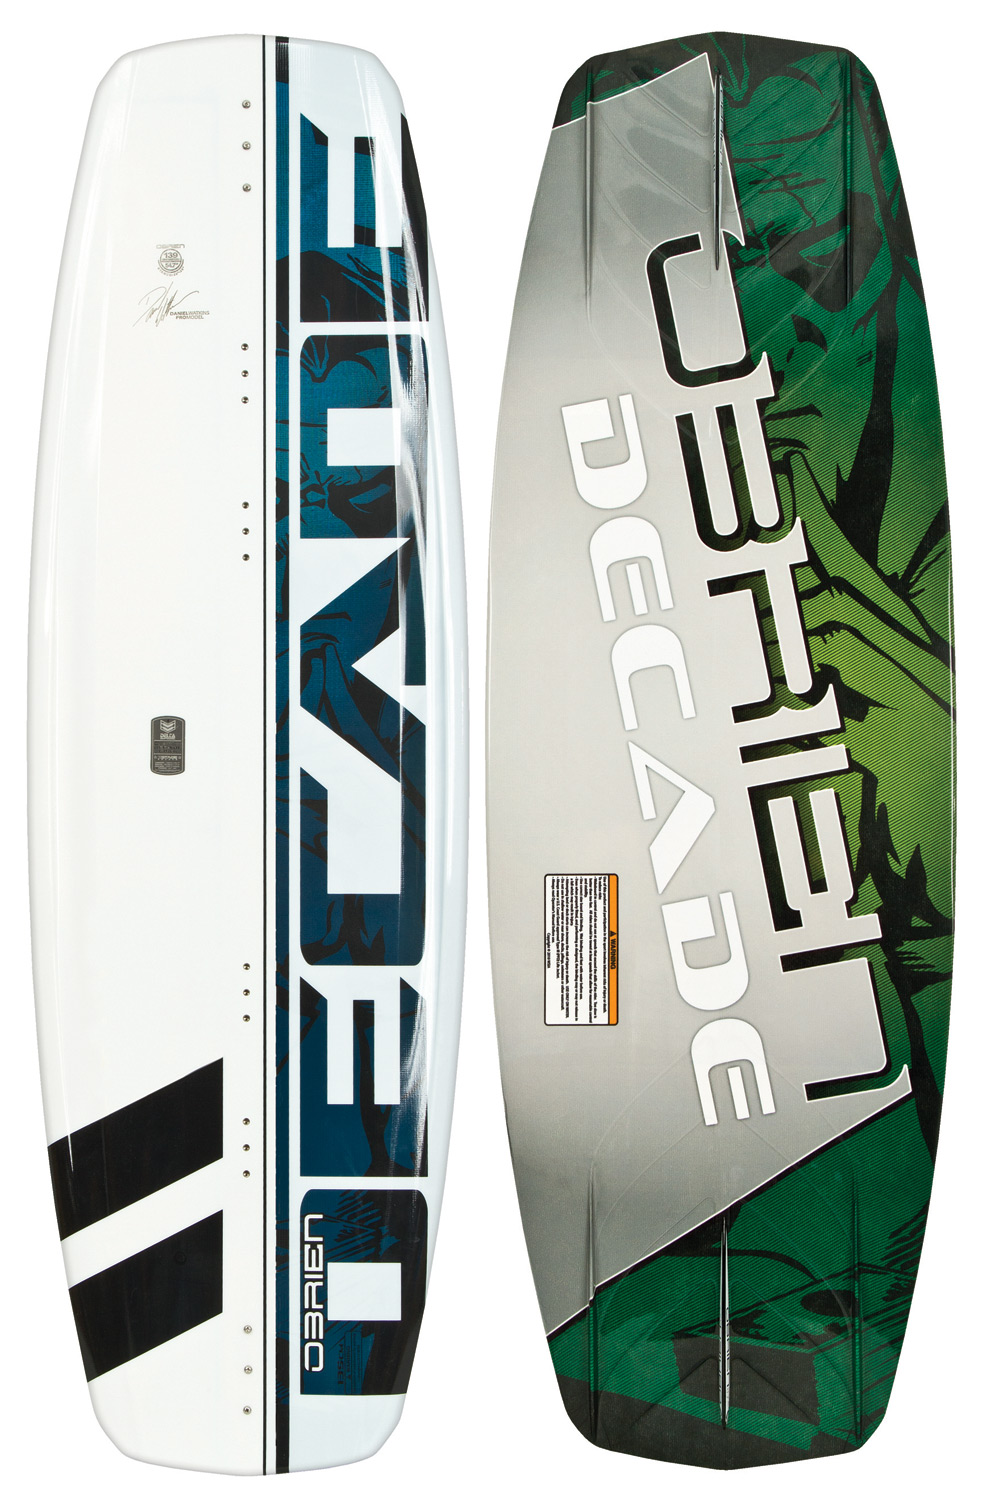 "Wake The O'Brien Decade Wakeboard is quickly becoming the board of choice for both freeride and competitive riders, and for good reason. The Decade pushes the envelope of thought and progression of wakeboard design. The variable edge profile is fat through the center 14"" of the board and quickly tapers to a more refined edge at the boot position to the tips of the board. This gives the board a unique floaty feel when centered, which transfers to a deep-set edge when carving. The expanded Delta base keeps the water cleanly breaking off the tail of the board, reducing rocker-induced drag and providing optimum release off the wake. The molded fins are as thin as possible for minimal drag and optimum control, and have been combined with a 3-stage rocker for just the right amount of kick. The Clean V bottom through the center of the board makes landings buttery soft. The O'Brien Decade Wakeboard, one ride is all it takes!  This board has some minor cosmetic defects-nothing that affects the performance   Variable edge profile   DELTA base   Molded fins   3-stage rocker   Clean V bottom    Wakeboard Binding Compatibility   Can accommodate bindings with a 6in binding plate    Can only accommodate a single mounting position option for Liquid Force bindings with a 8in binding plate and offers two positions for all other vendors - $136.95"